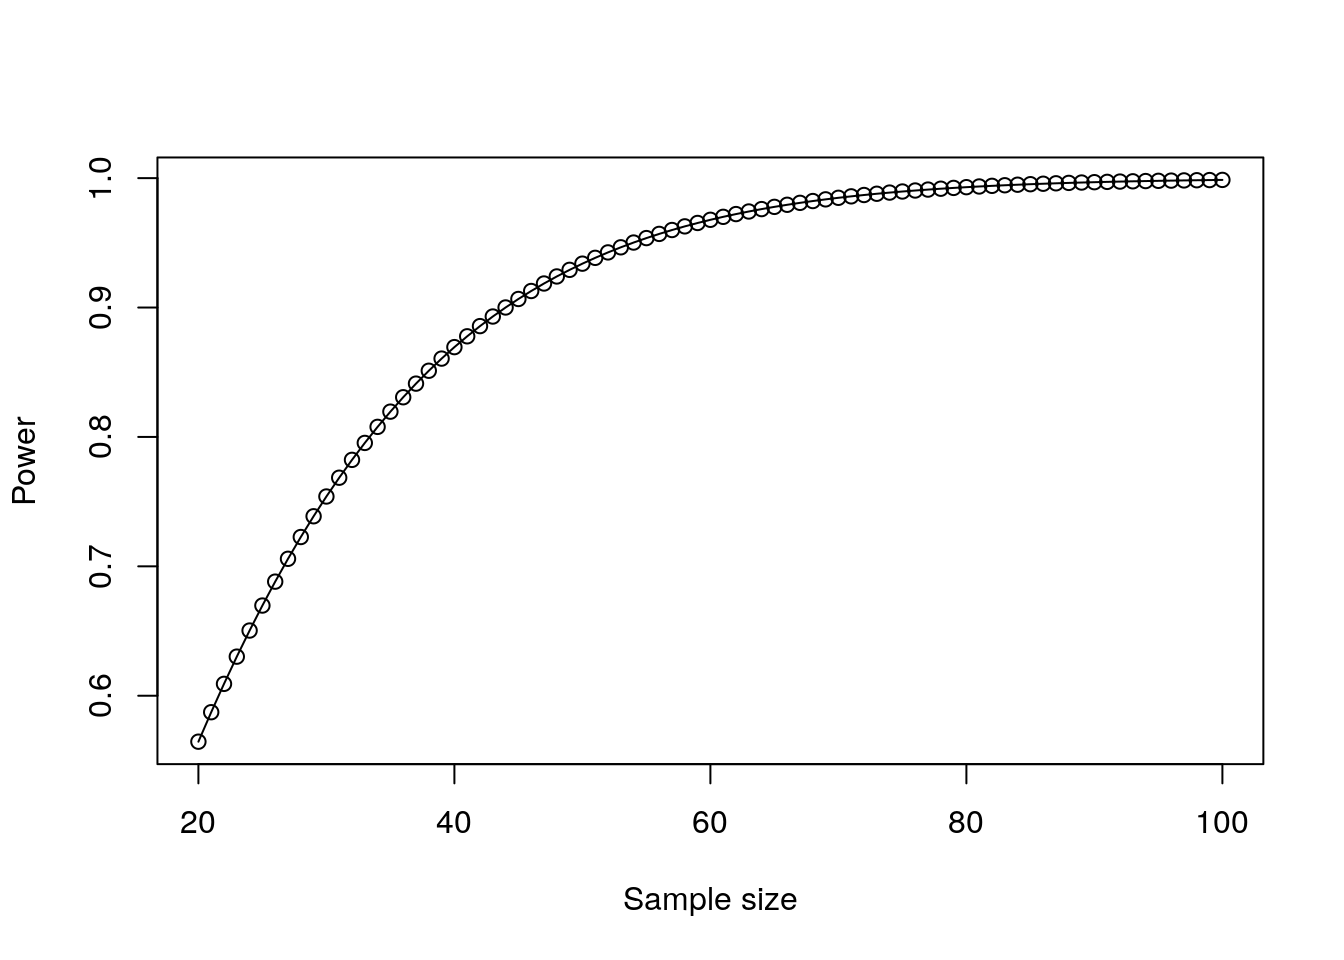 Plot of power against sample size for a paired t-test